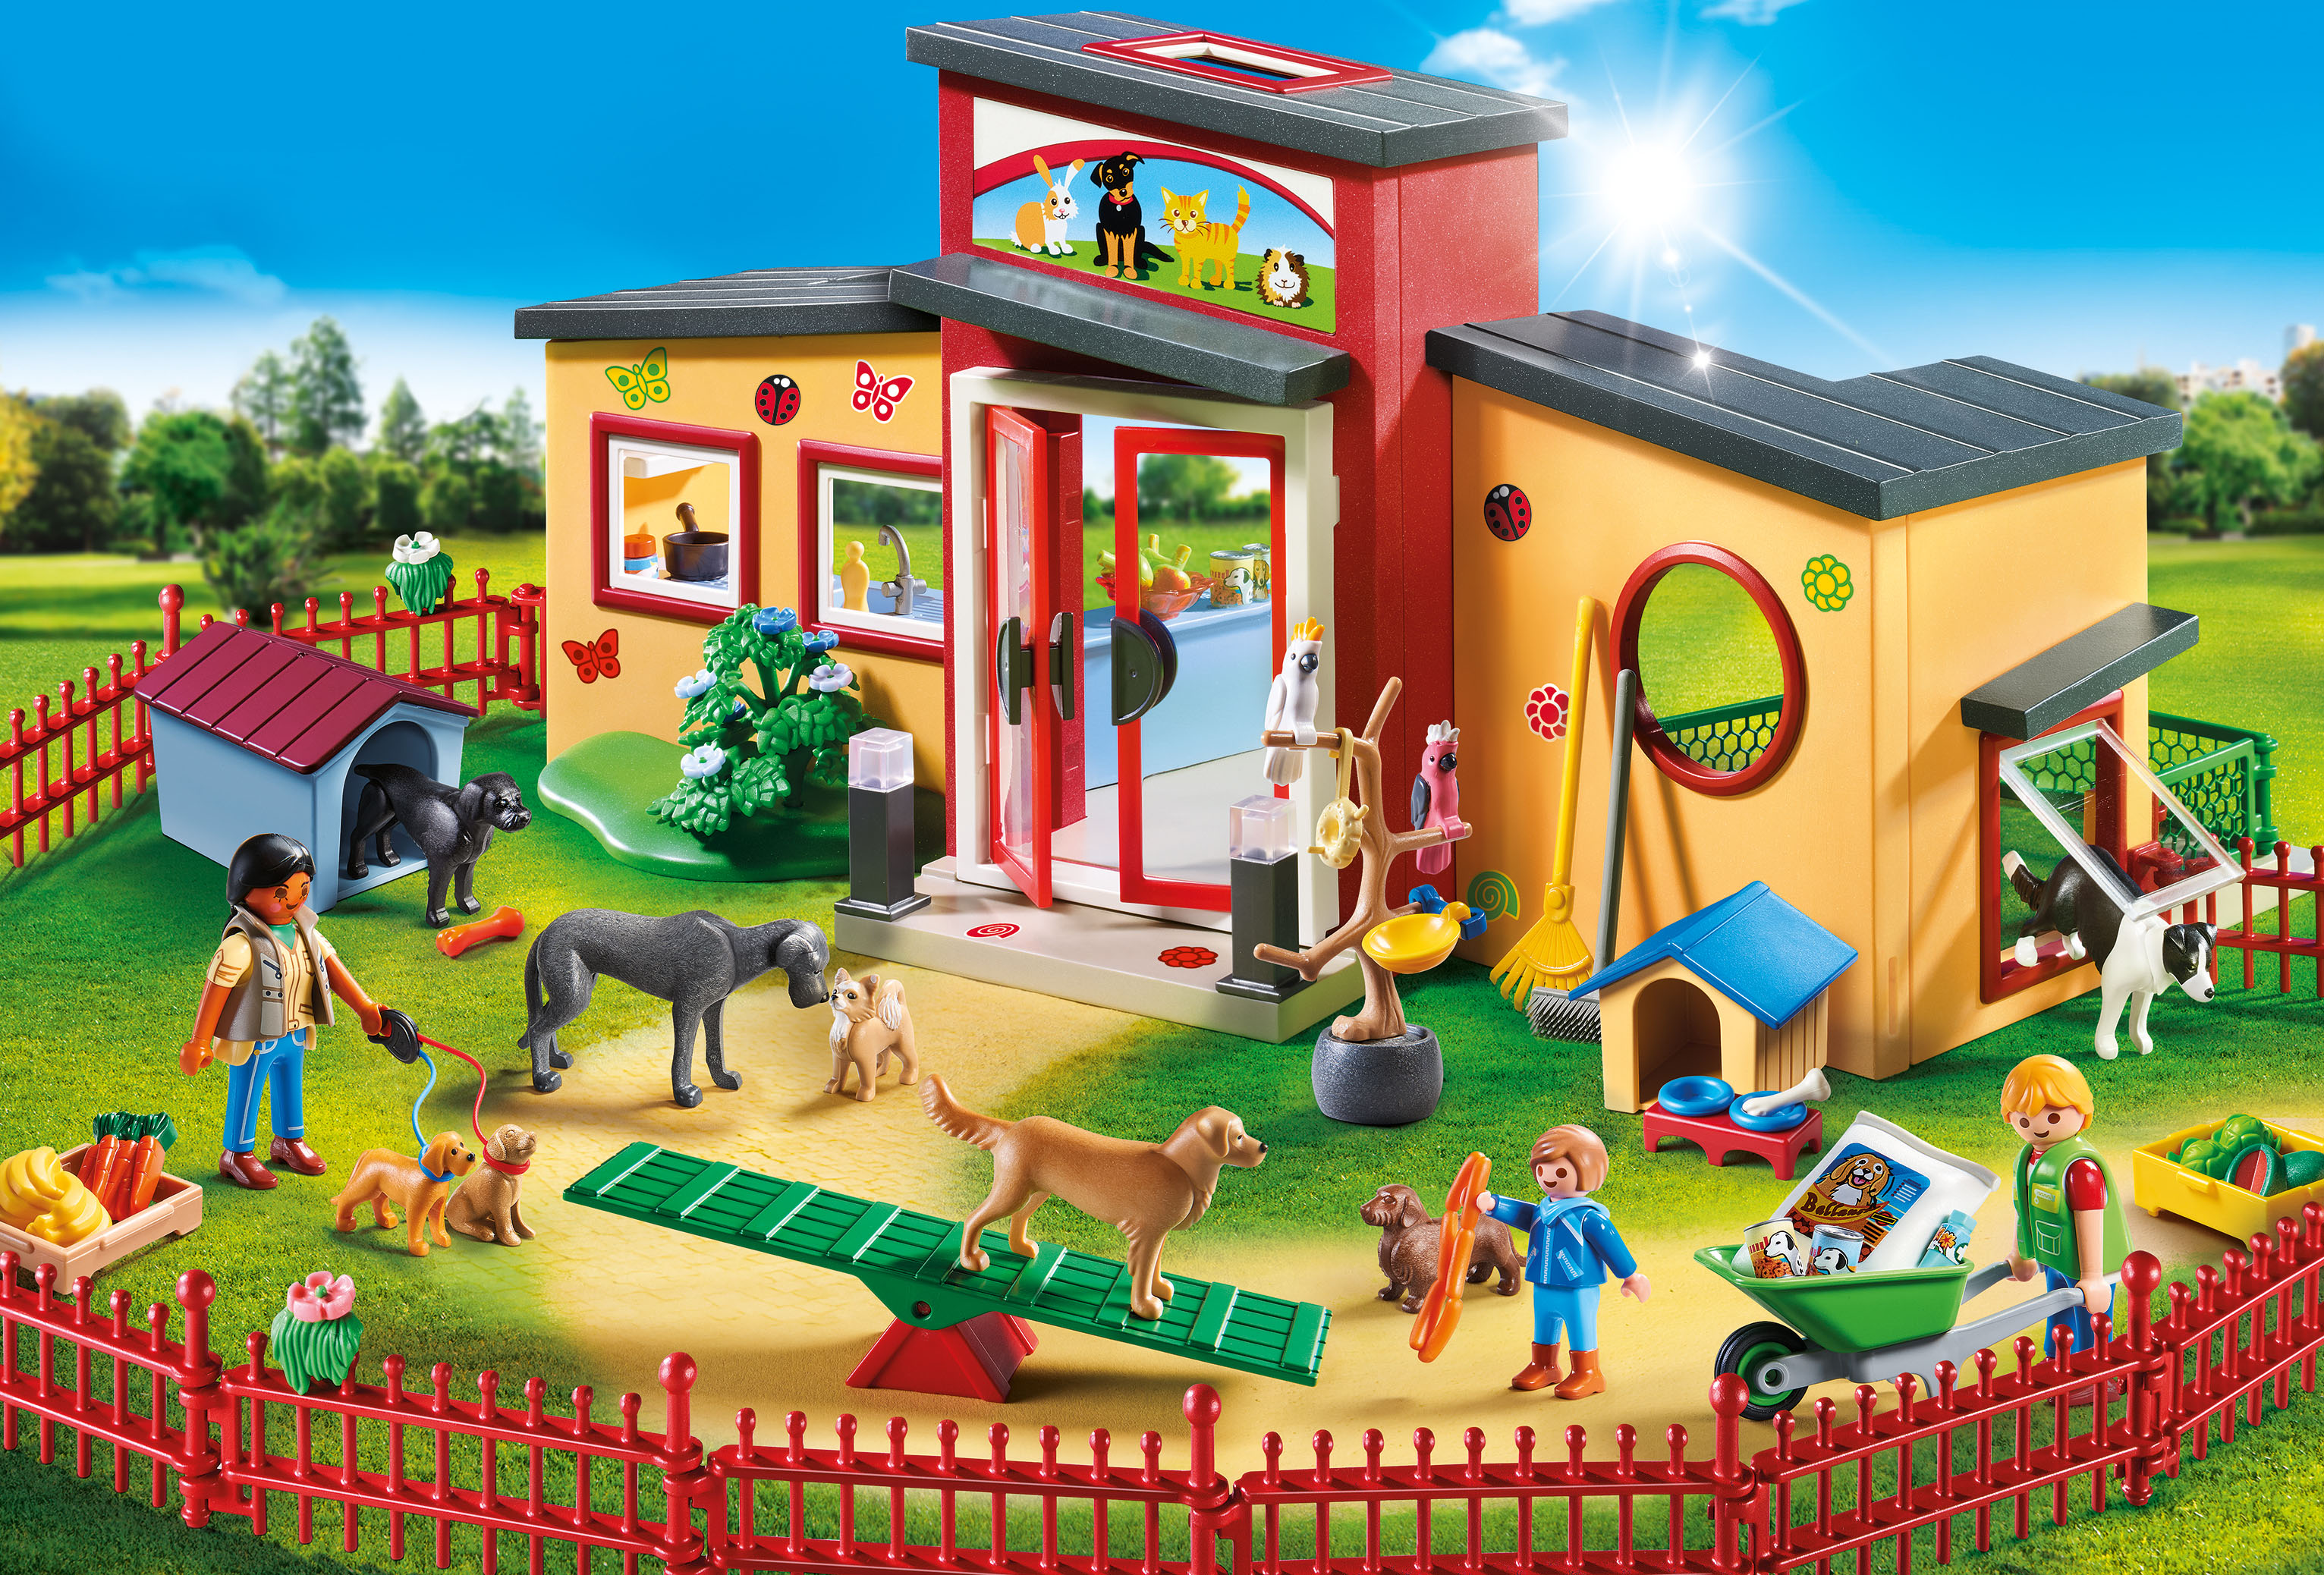 PLAYMOBIL Tiny Paws Pet Hotel 9275.jpg